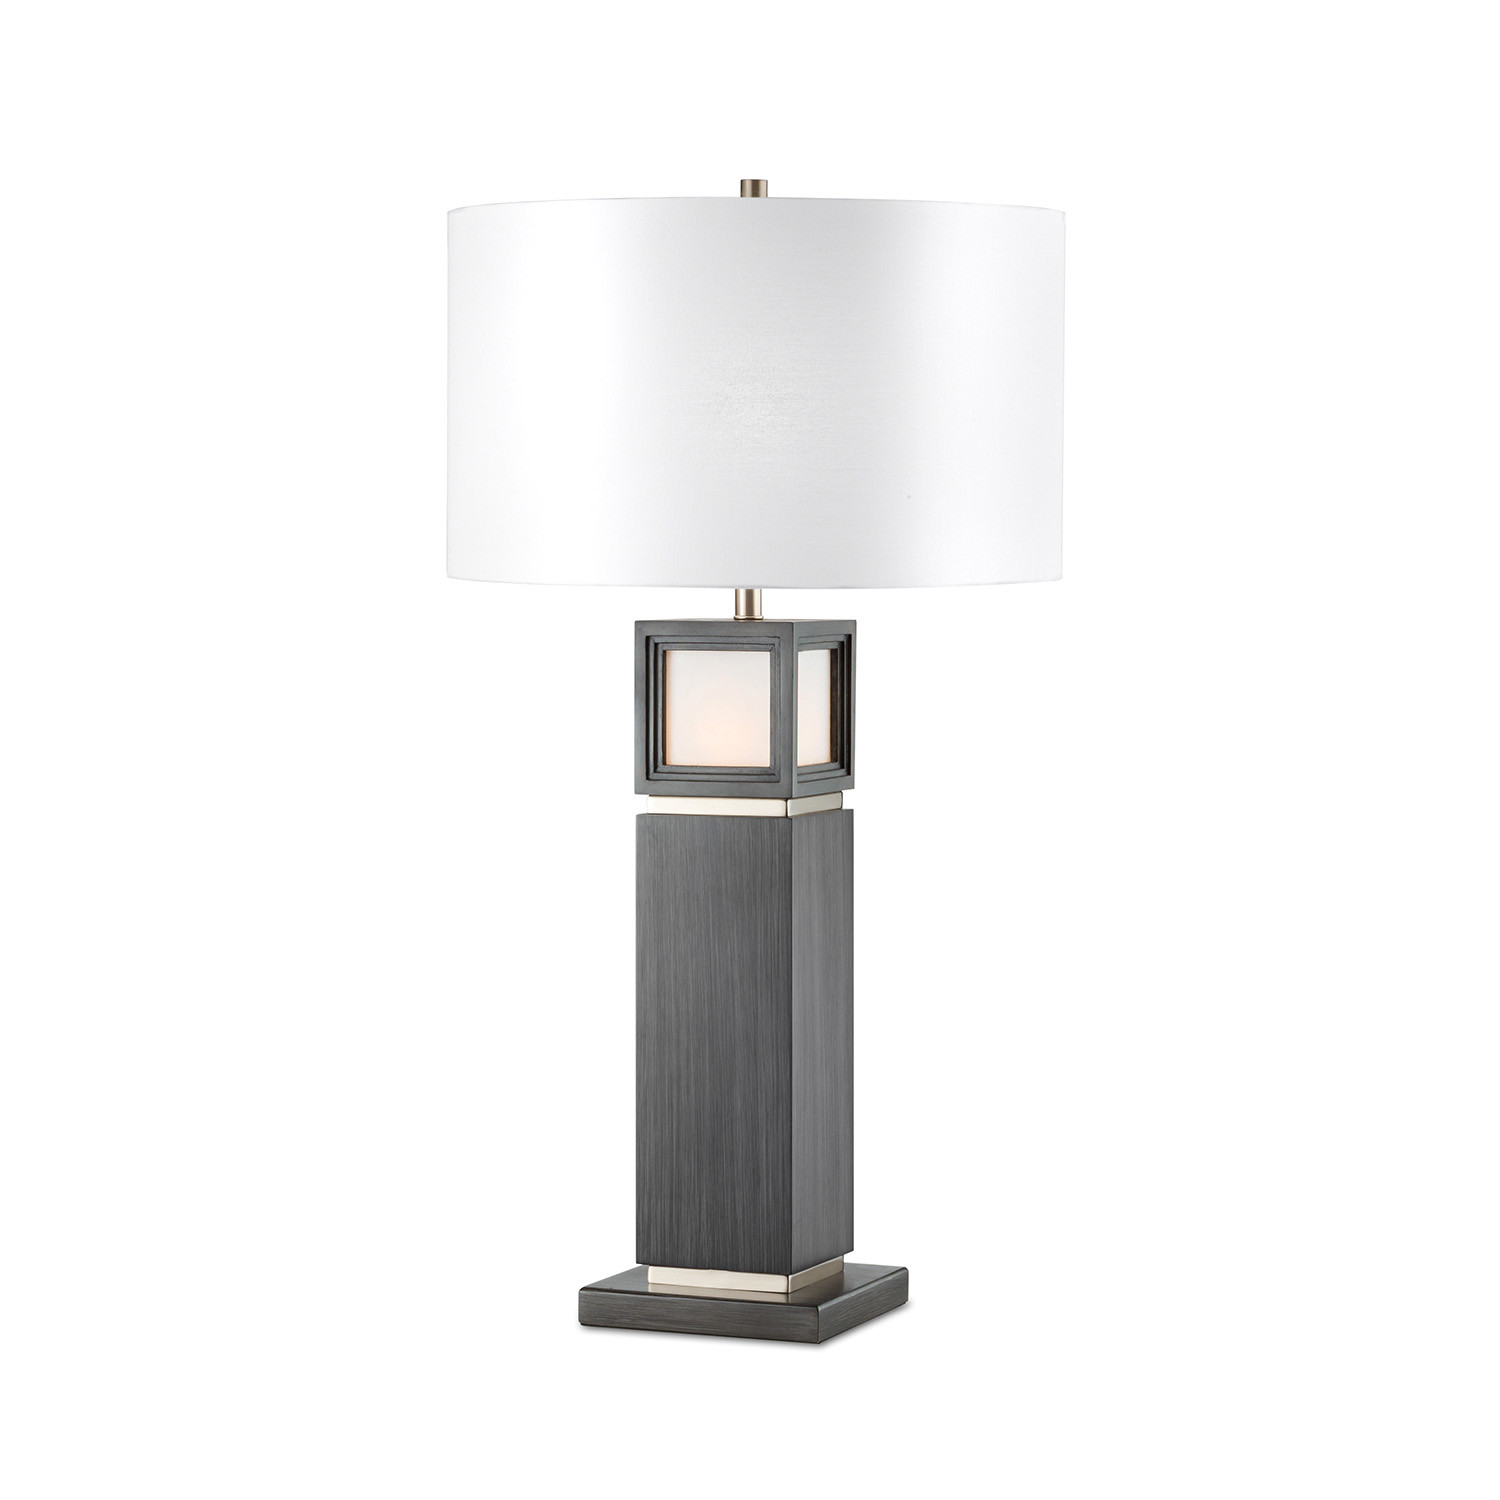 Woodbury table lamp clearance home kitchen touch of modern woodbury table lamp aloadofball Image collections